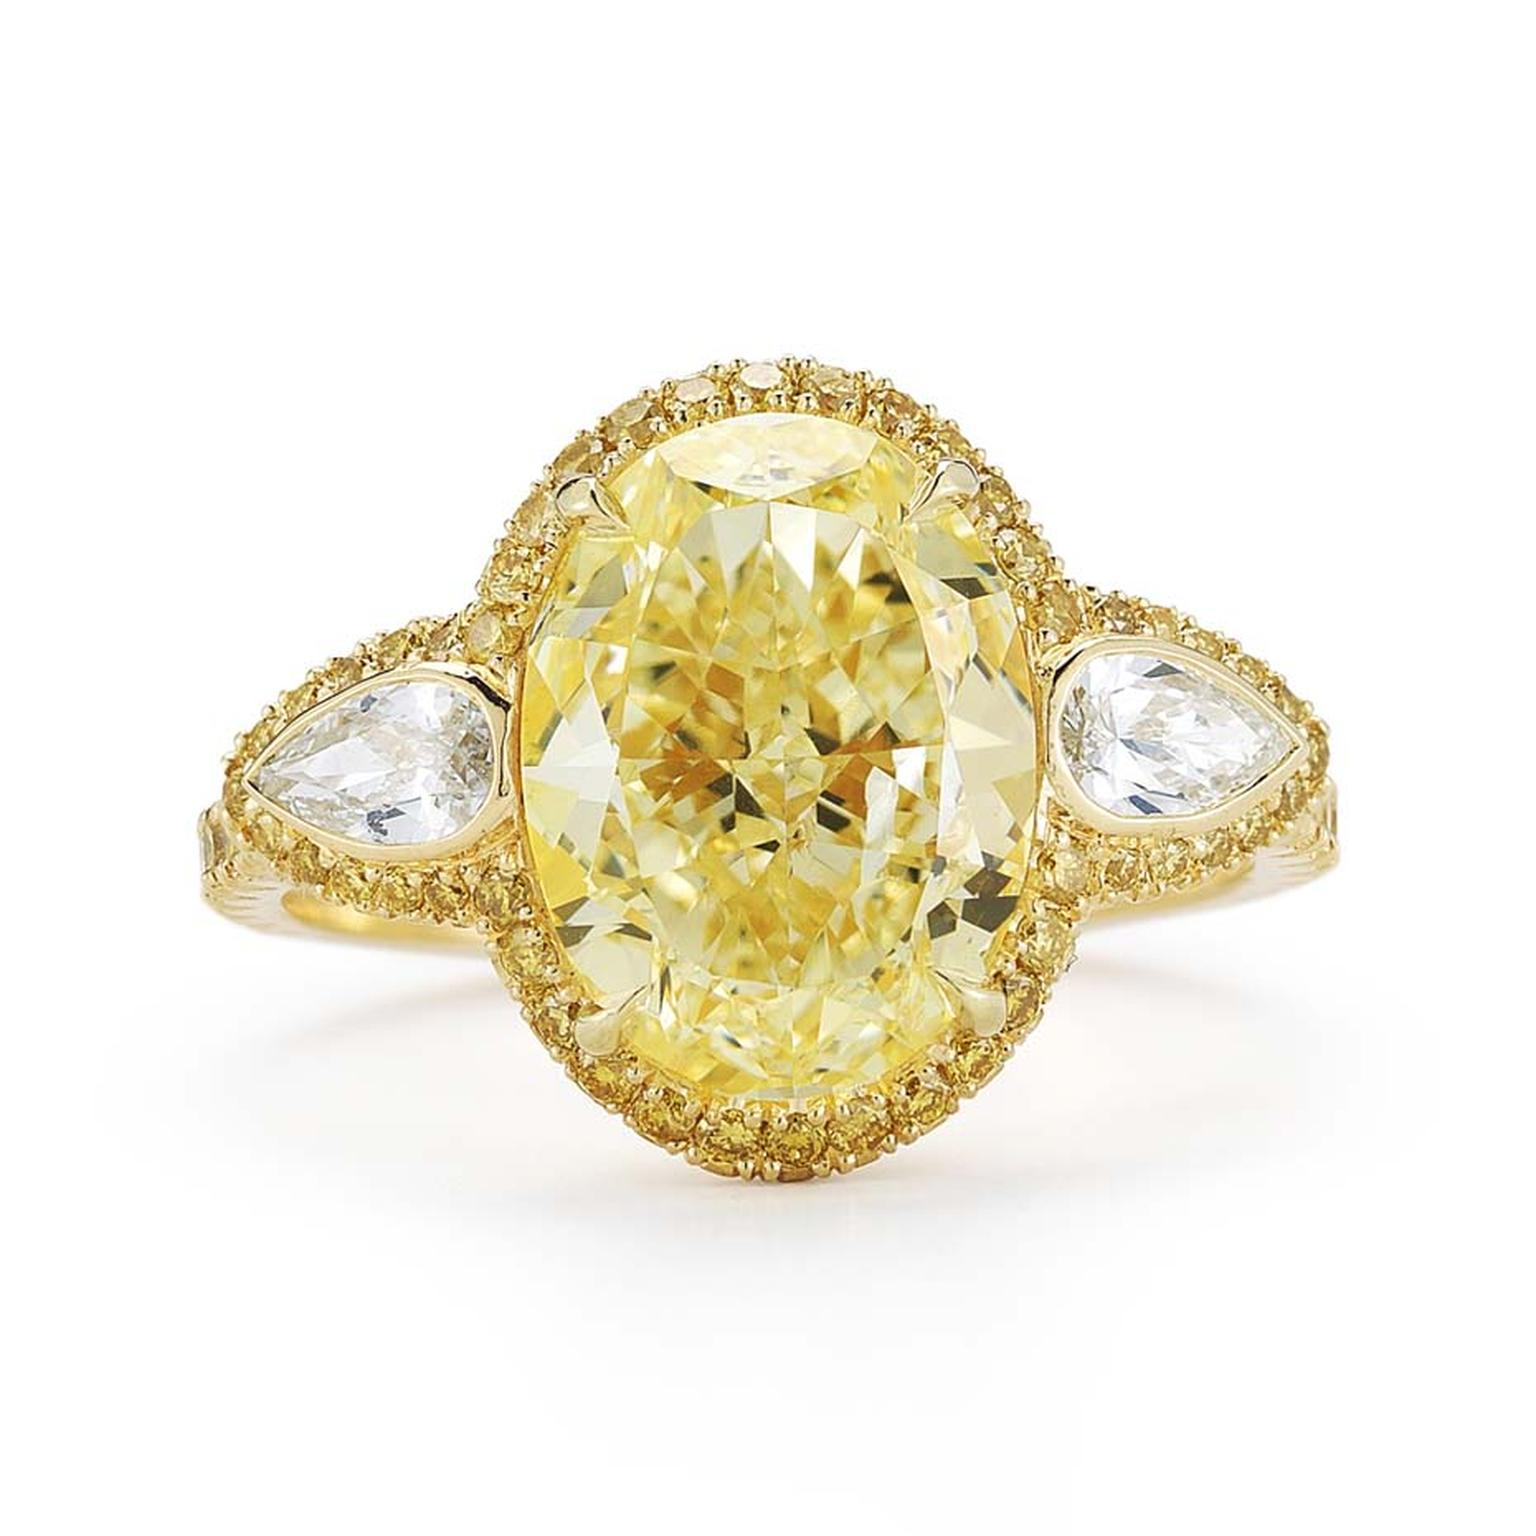 Kwiat oval-cut yellow diamond engagement ring in yellow gold, set with a 4.01ct Fancy light yellow diamond with bezel-set pear side stones and a yellow diamond pavé halo.